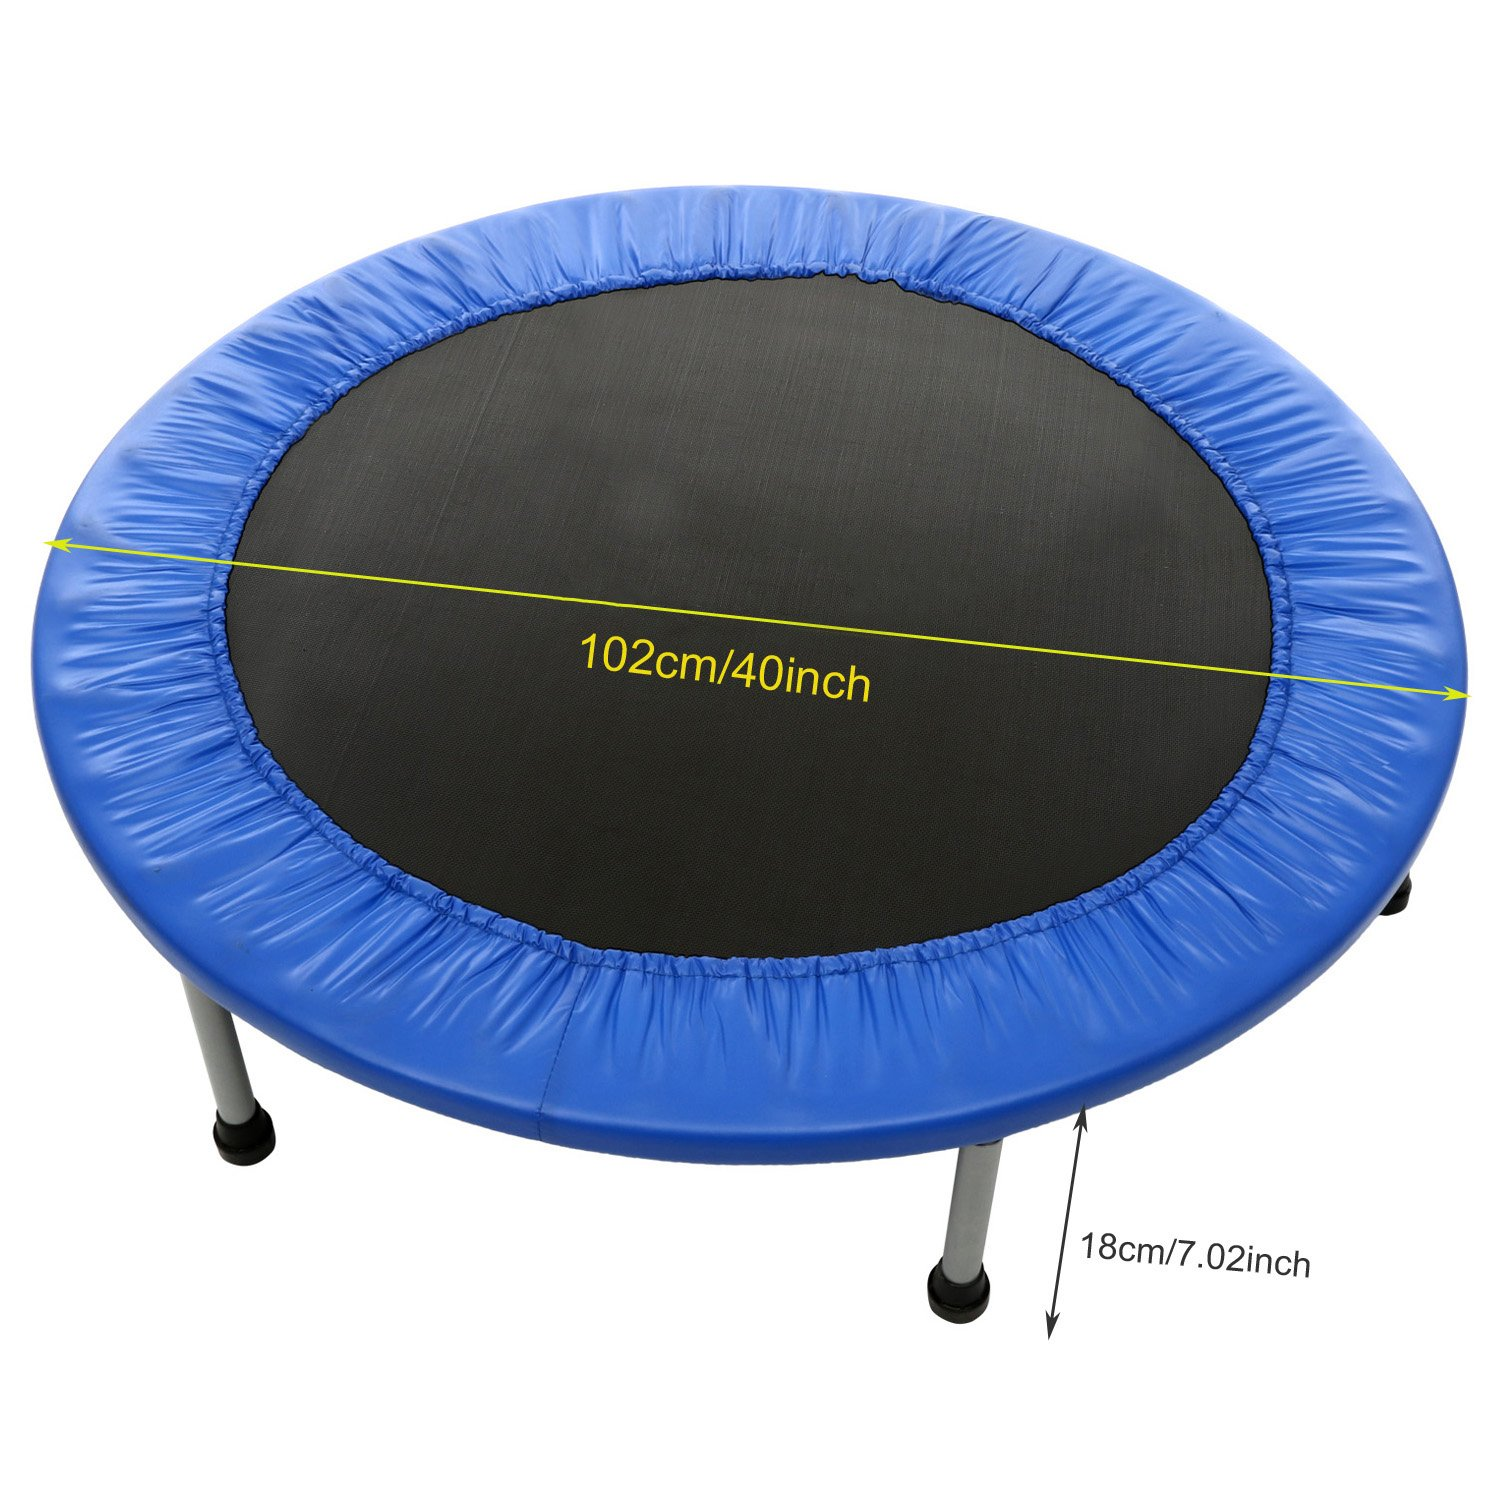 40 inch Rebounder Trampoline Max Load 220lbs Indoor Garden Workout Cardio Training Mini Trampoline for Gymnastic,Ultrasport, Exercise with Safety Pad